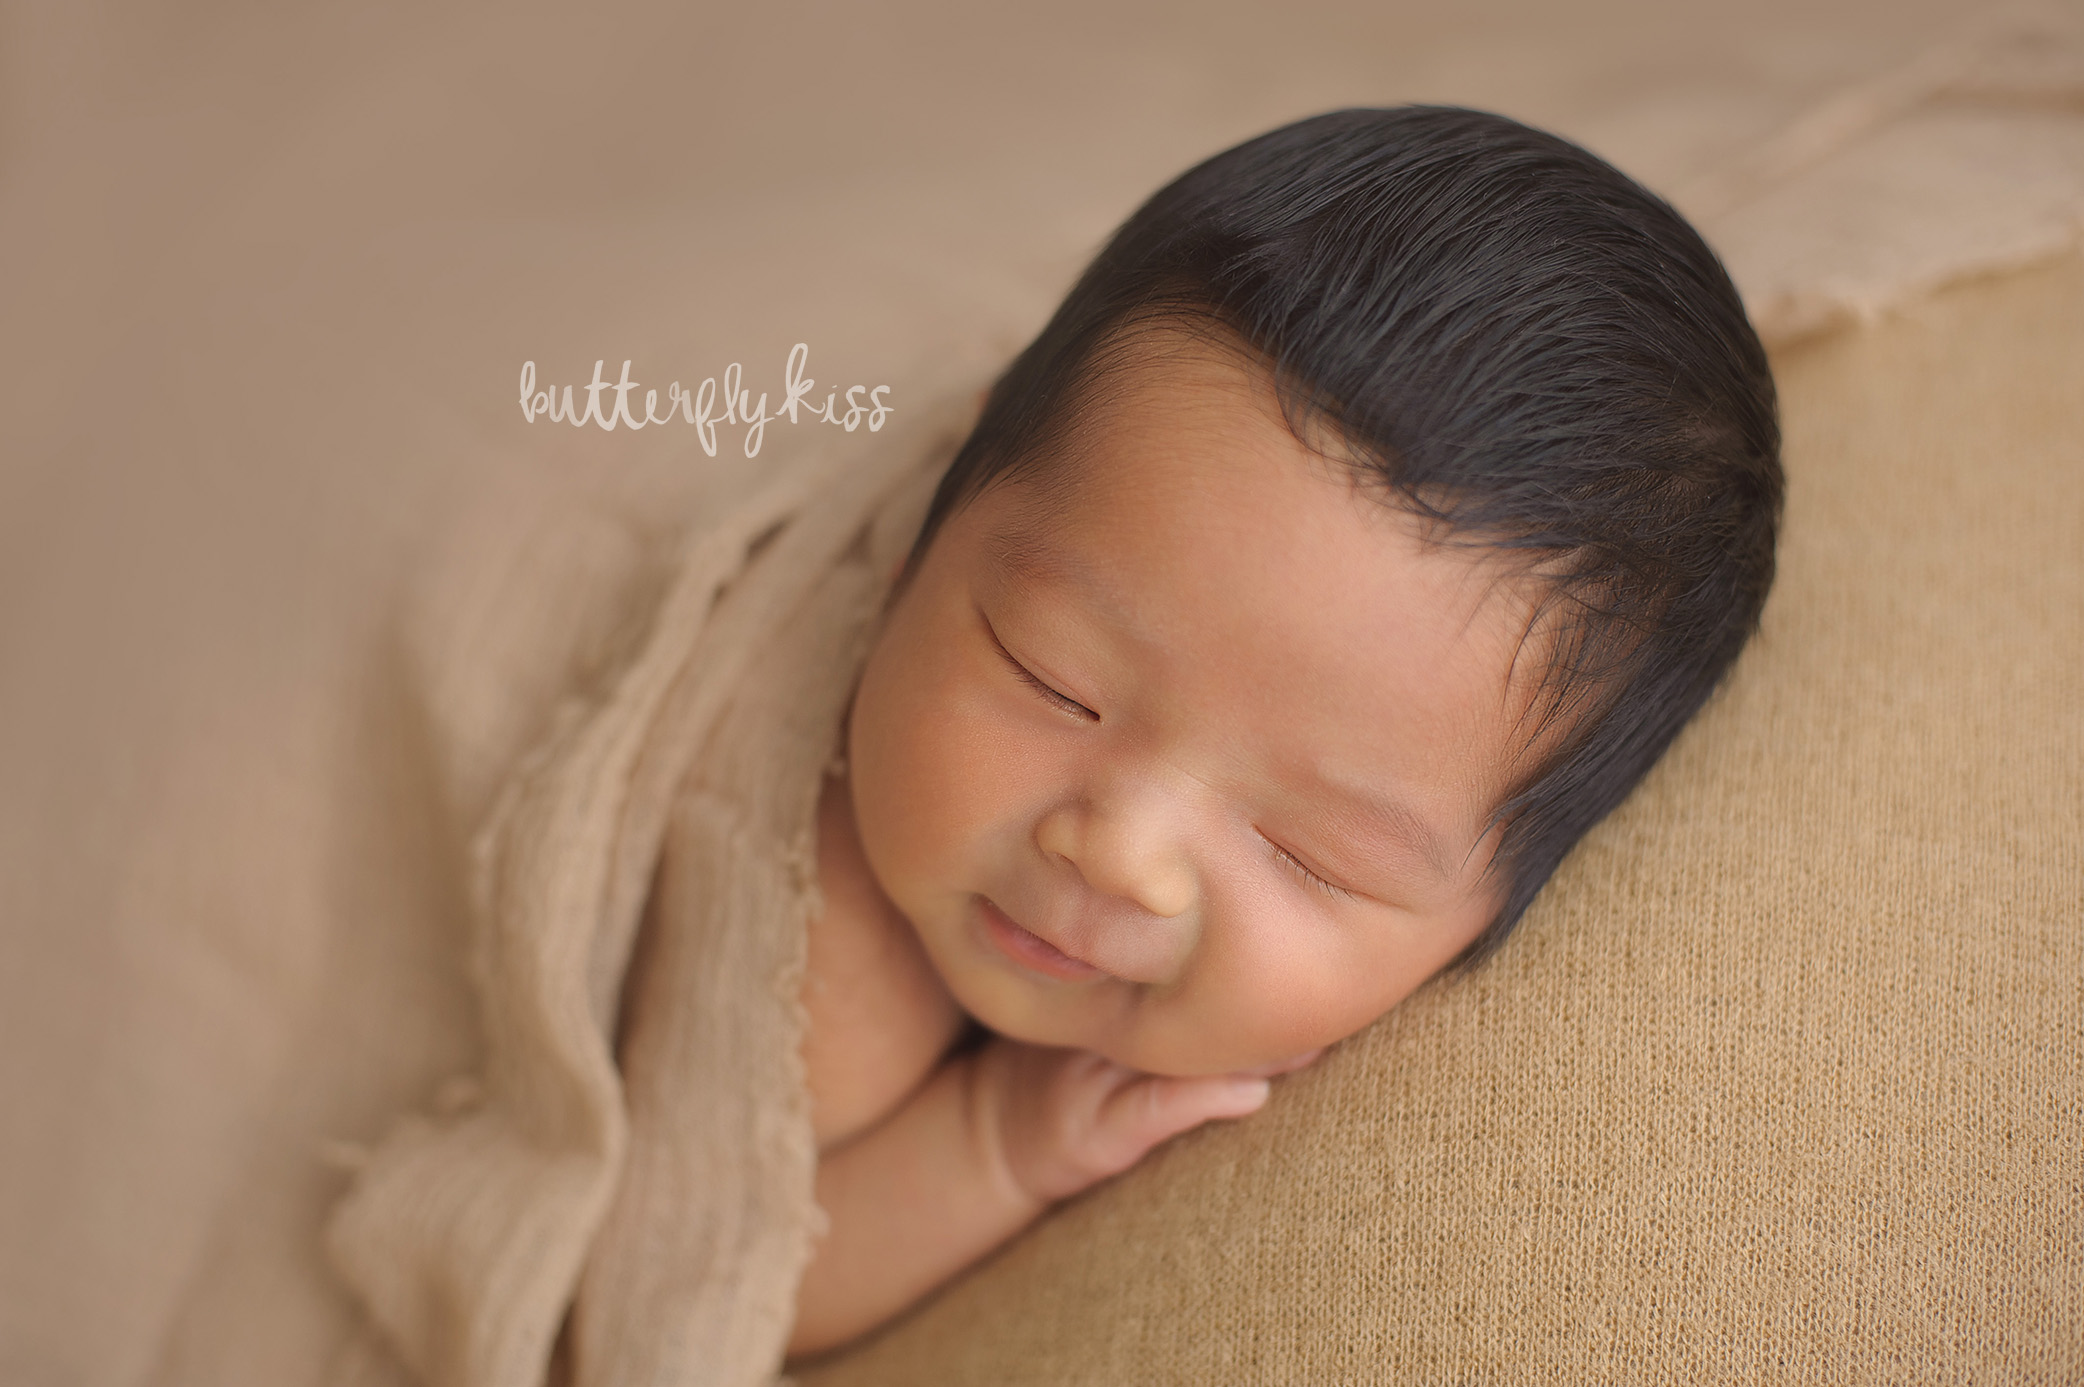 olympia newborn photographer monotone neutral earthtone earthy baby smile smiling picture